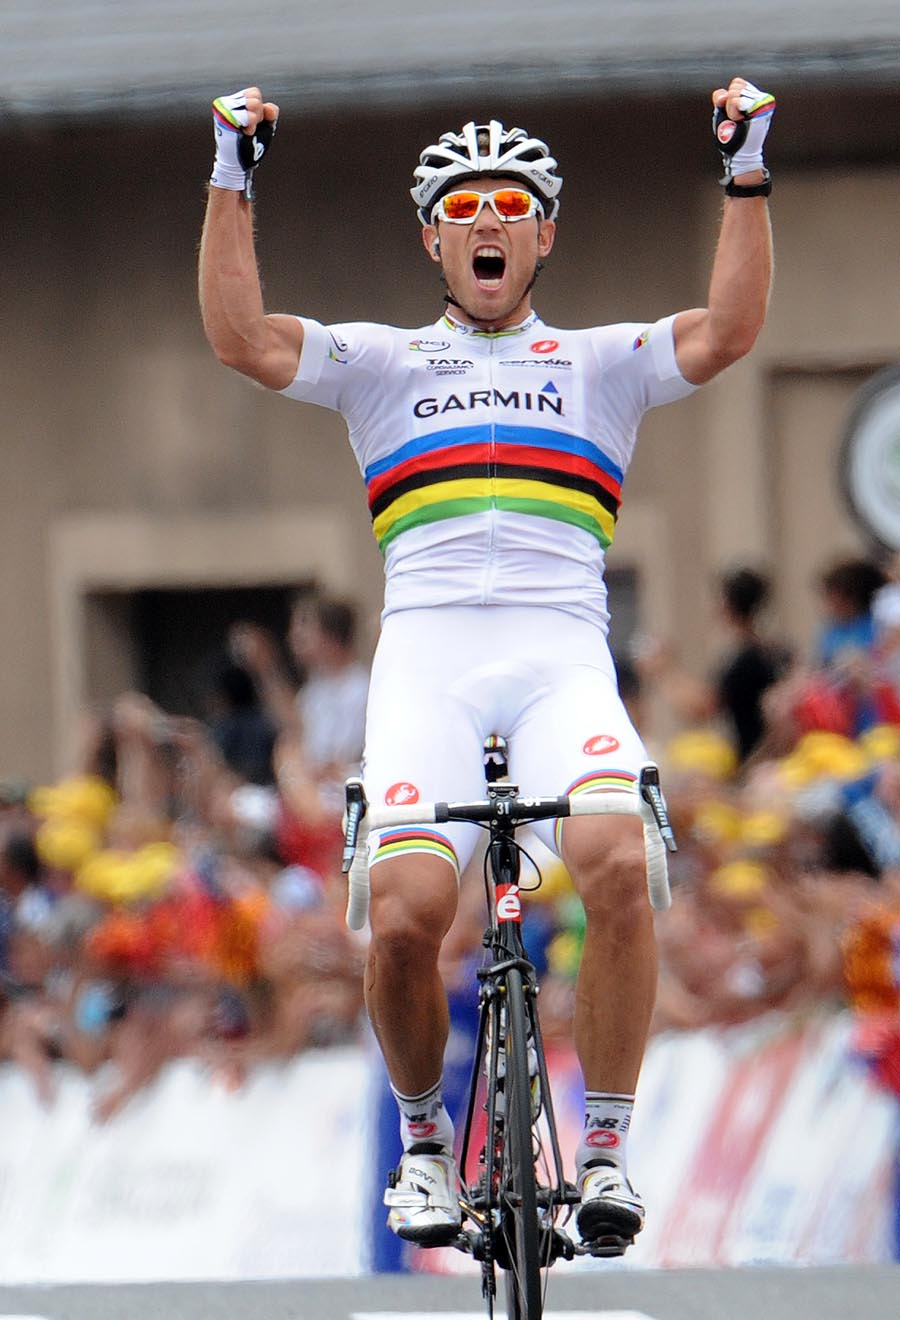 Thor Hushovd wins, Tour de France 2011, stage 13